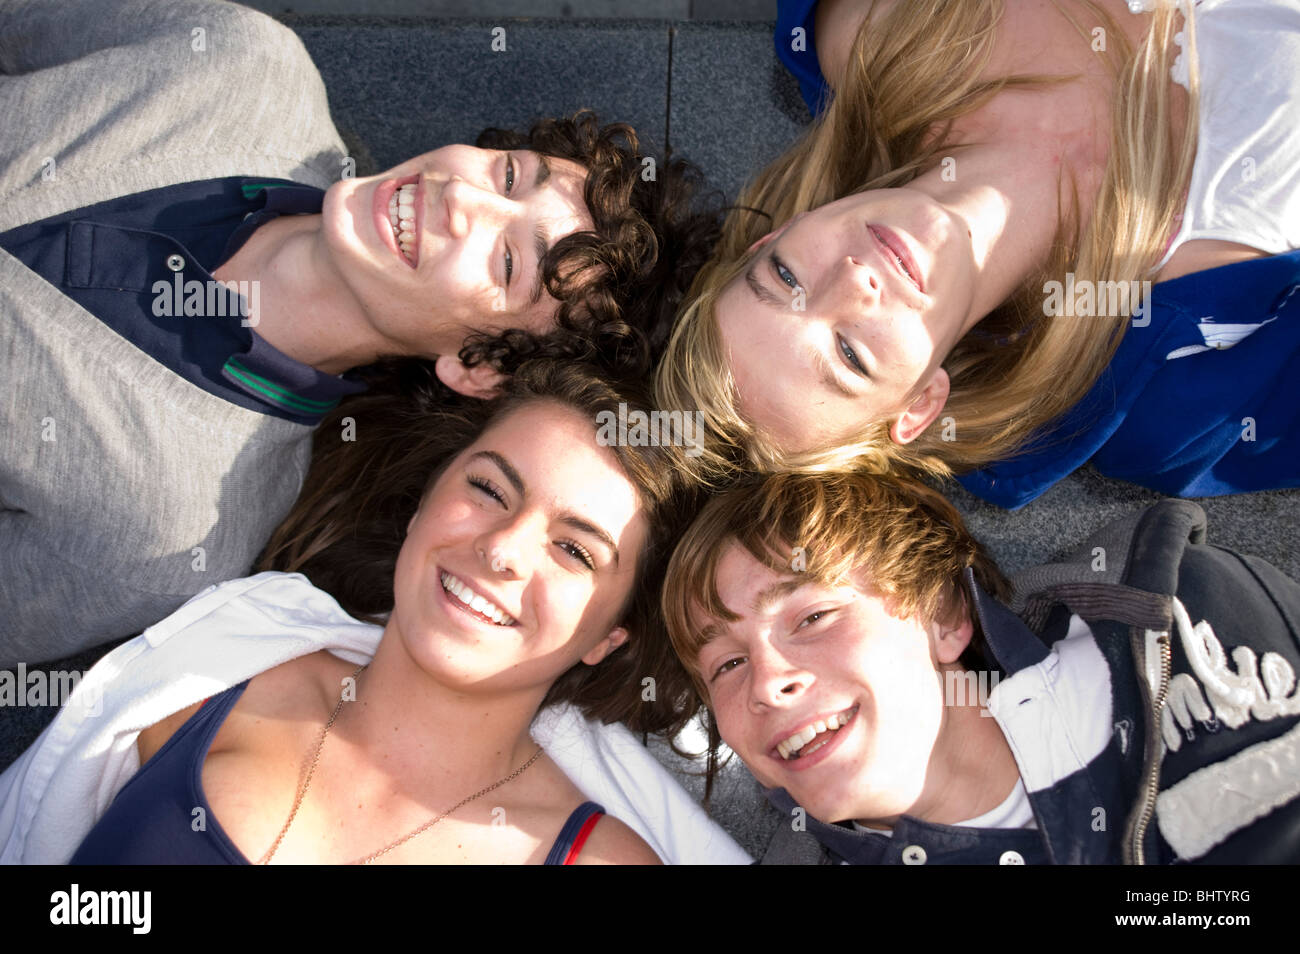 2 Boys 2 Girls Friends High Resolution Stock Photography And Images Alamy